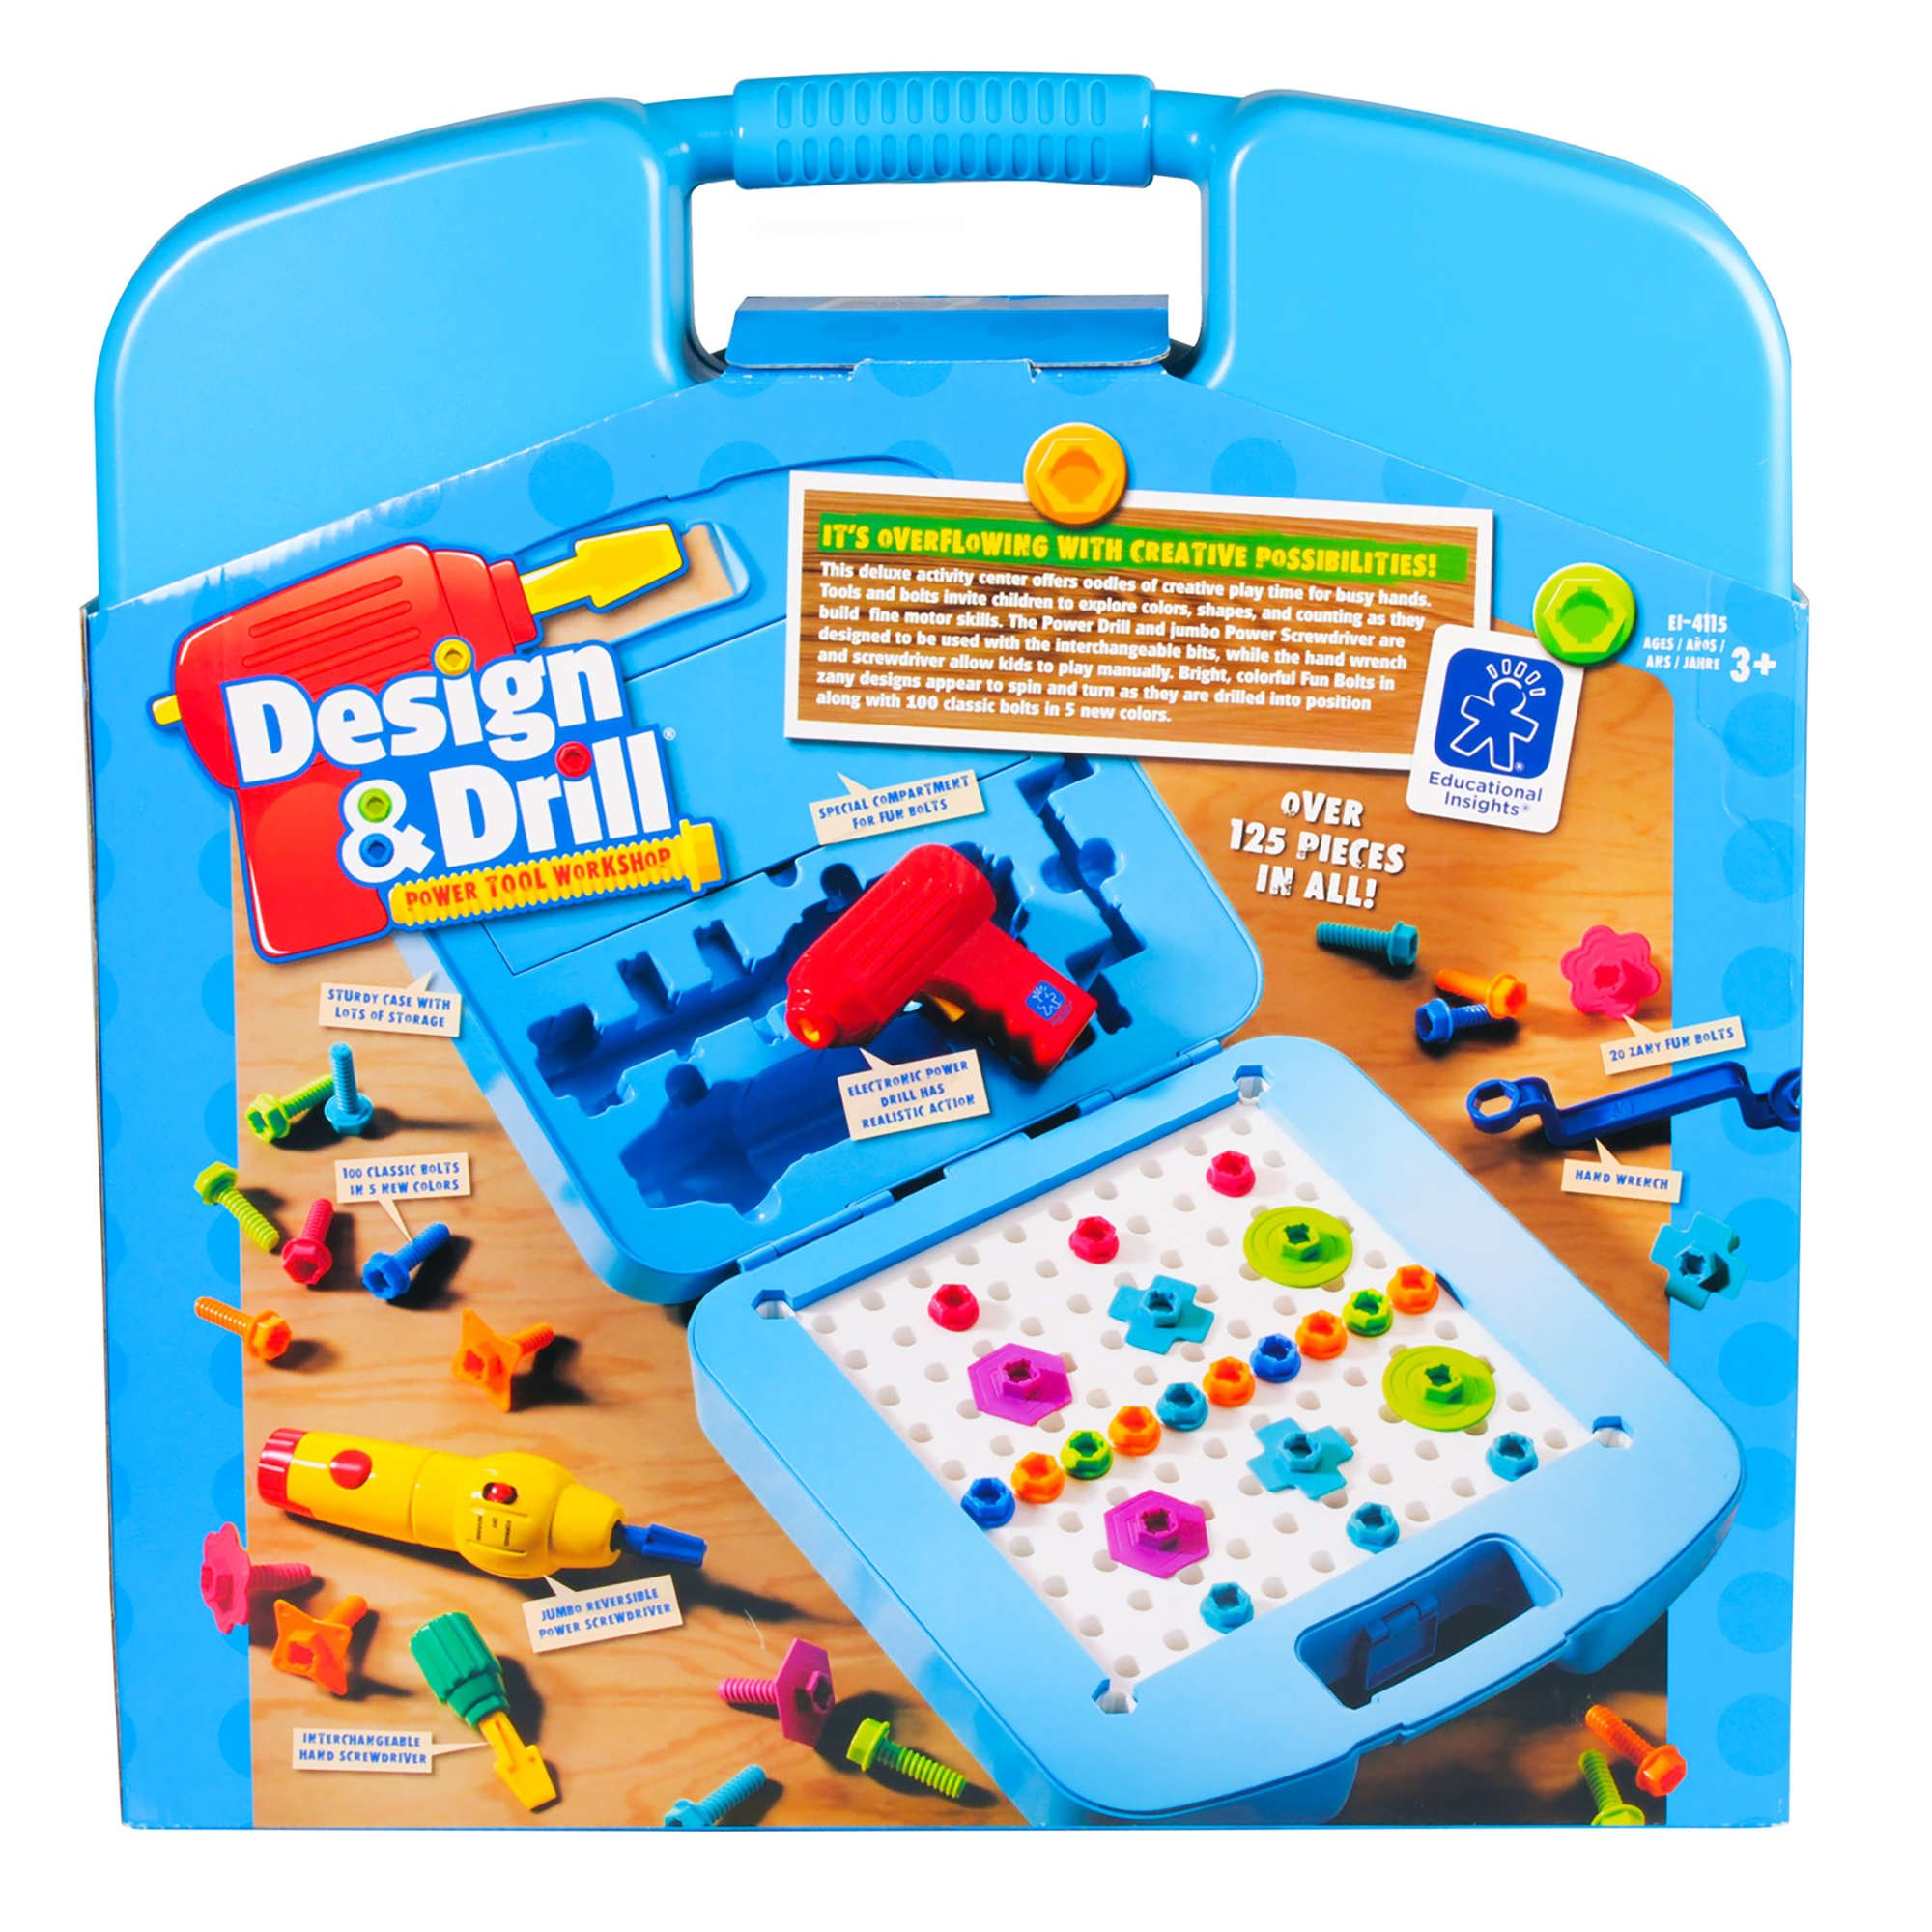 Educational Insights Design & Drill Power Tool Workshop - Drill Toy, STEM & Construction, Building Toy by Educational Insights (Image #7)